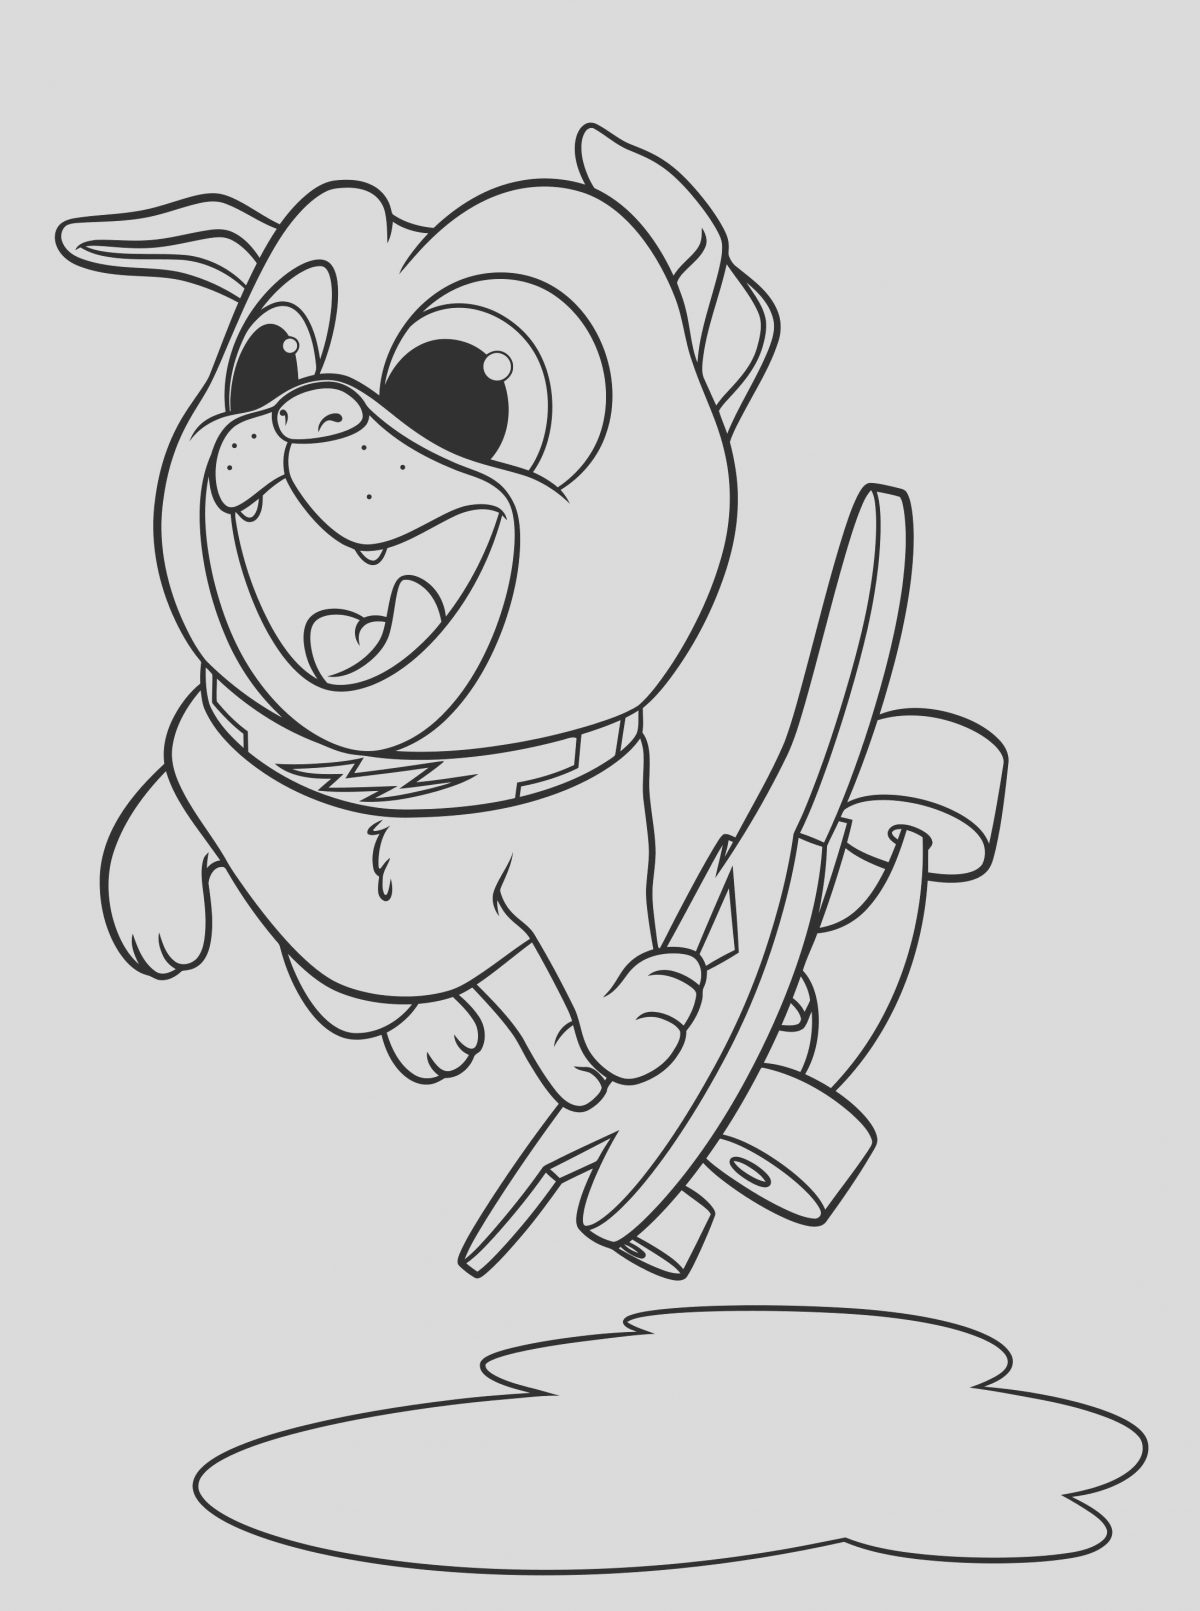 Dog and Puppy Coloring Page Lovely Puppy Dog Pals Coloring Pages to and Print for Free